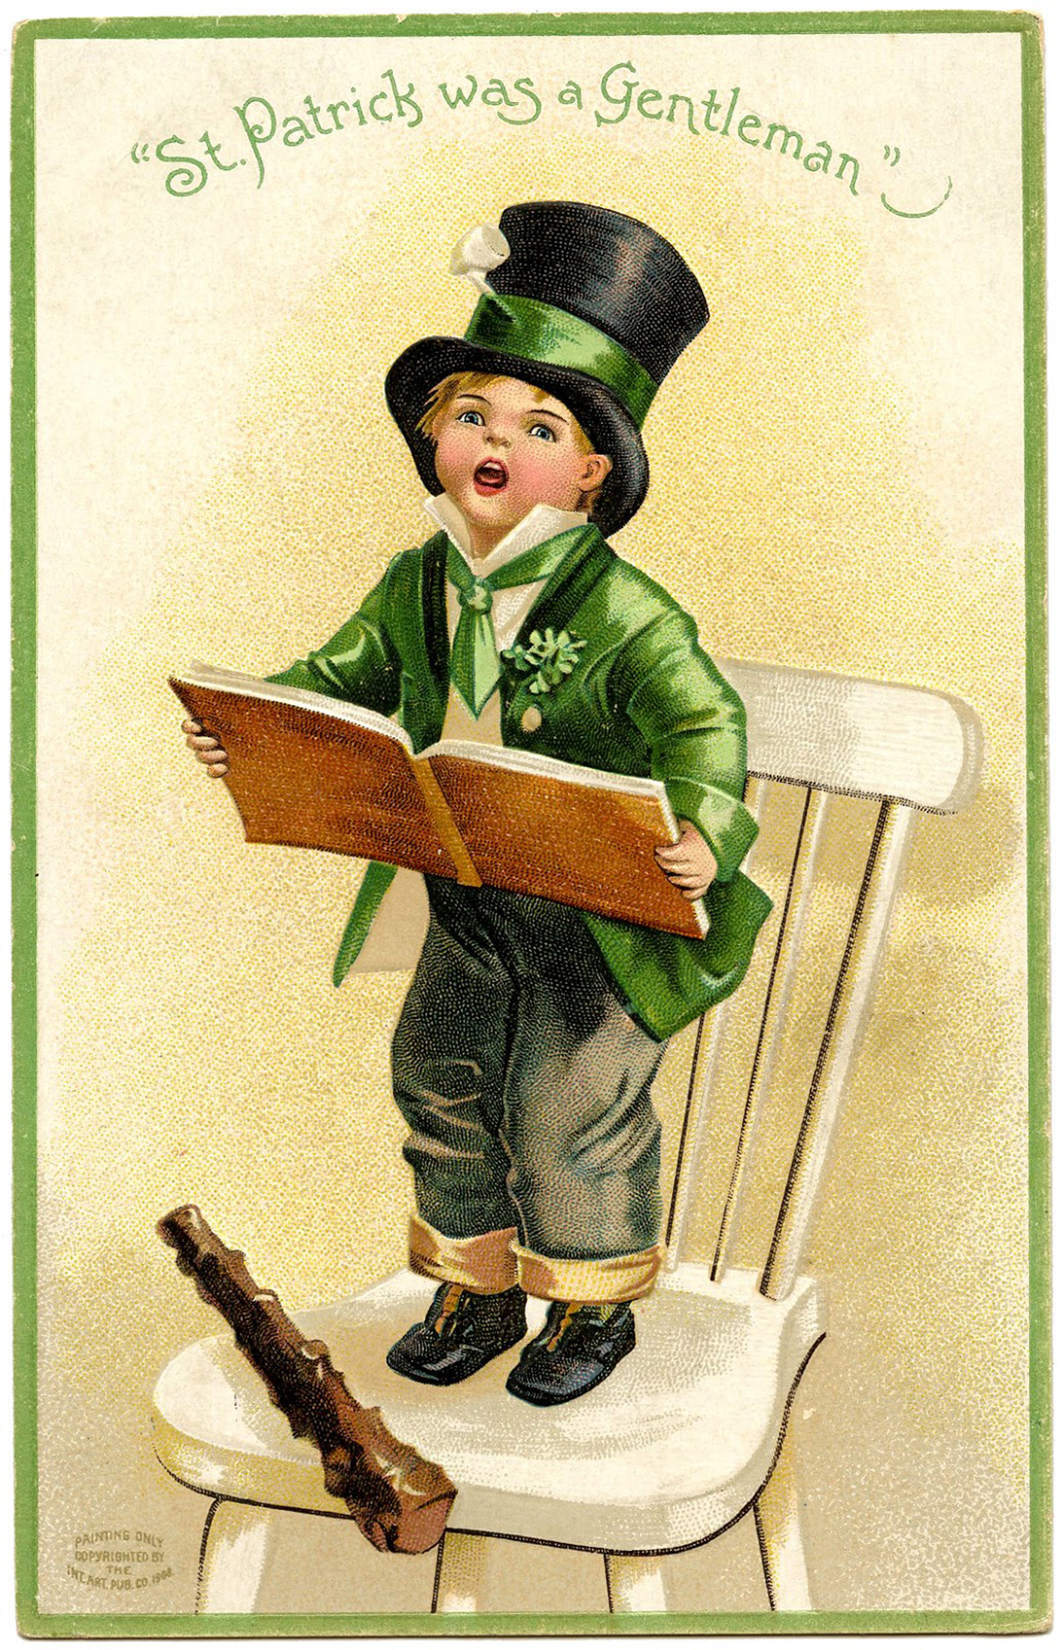 StPatricks-Boy-Vintage-Image-GraphicsFairy